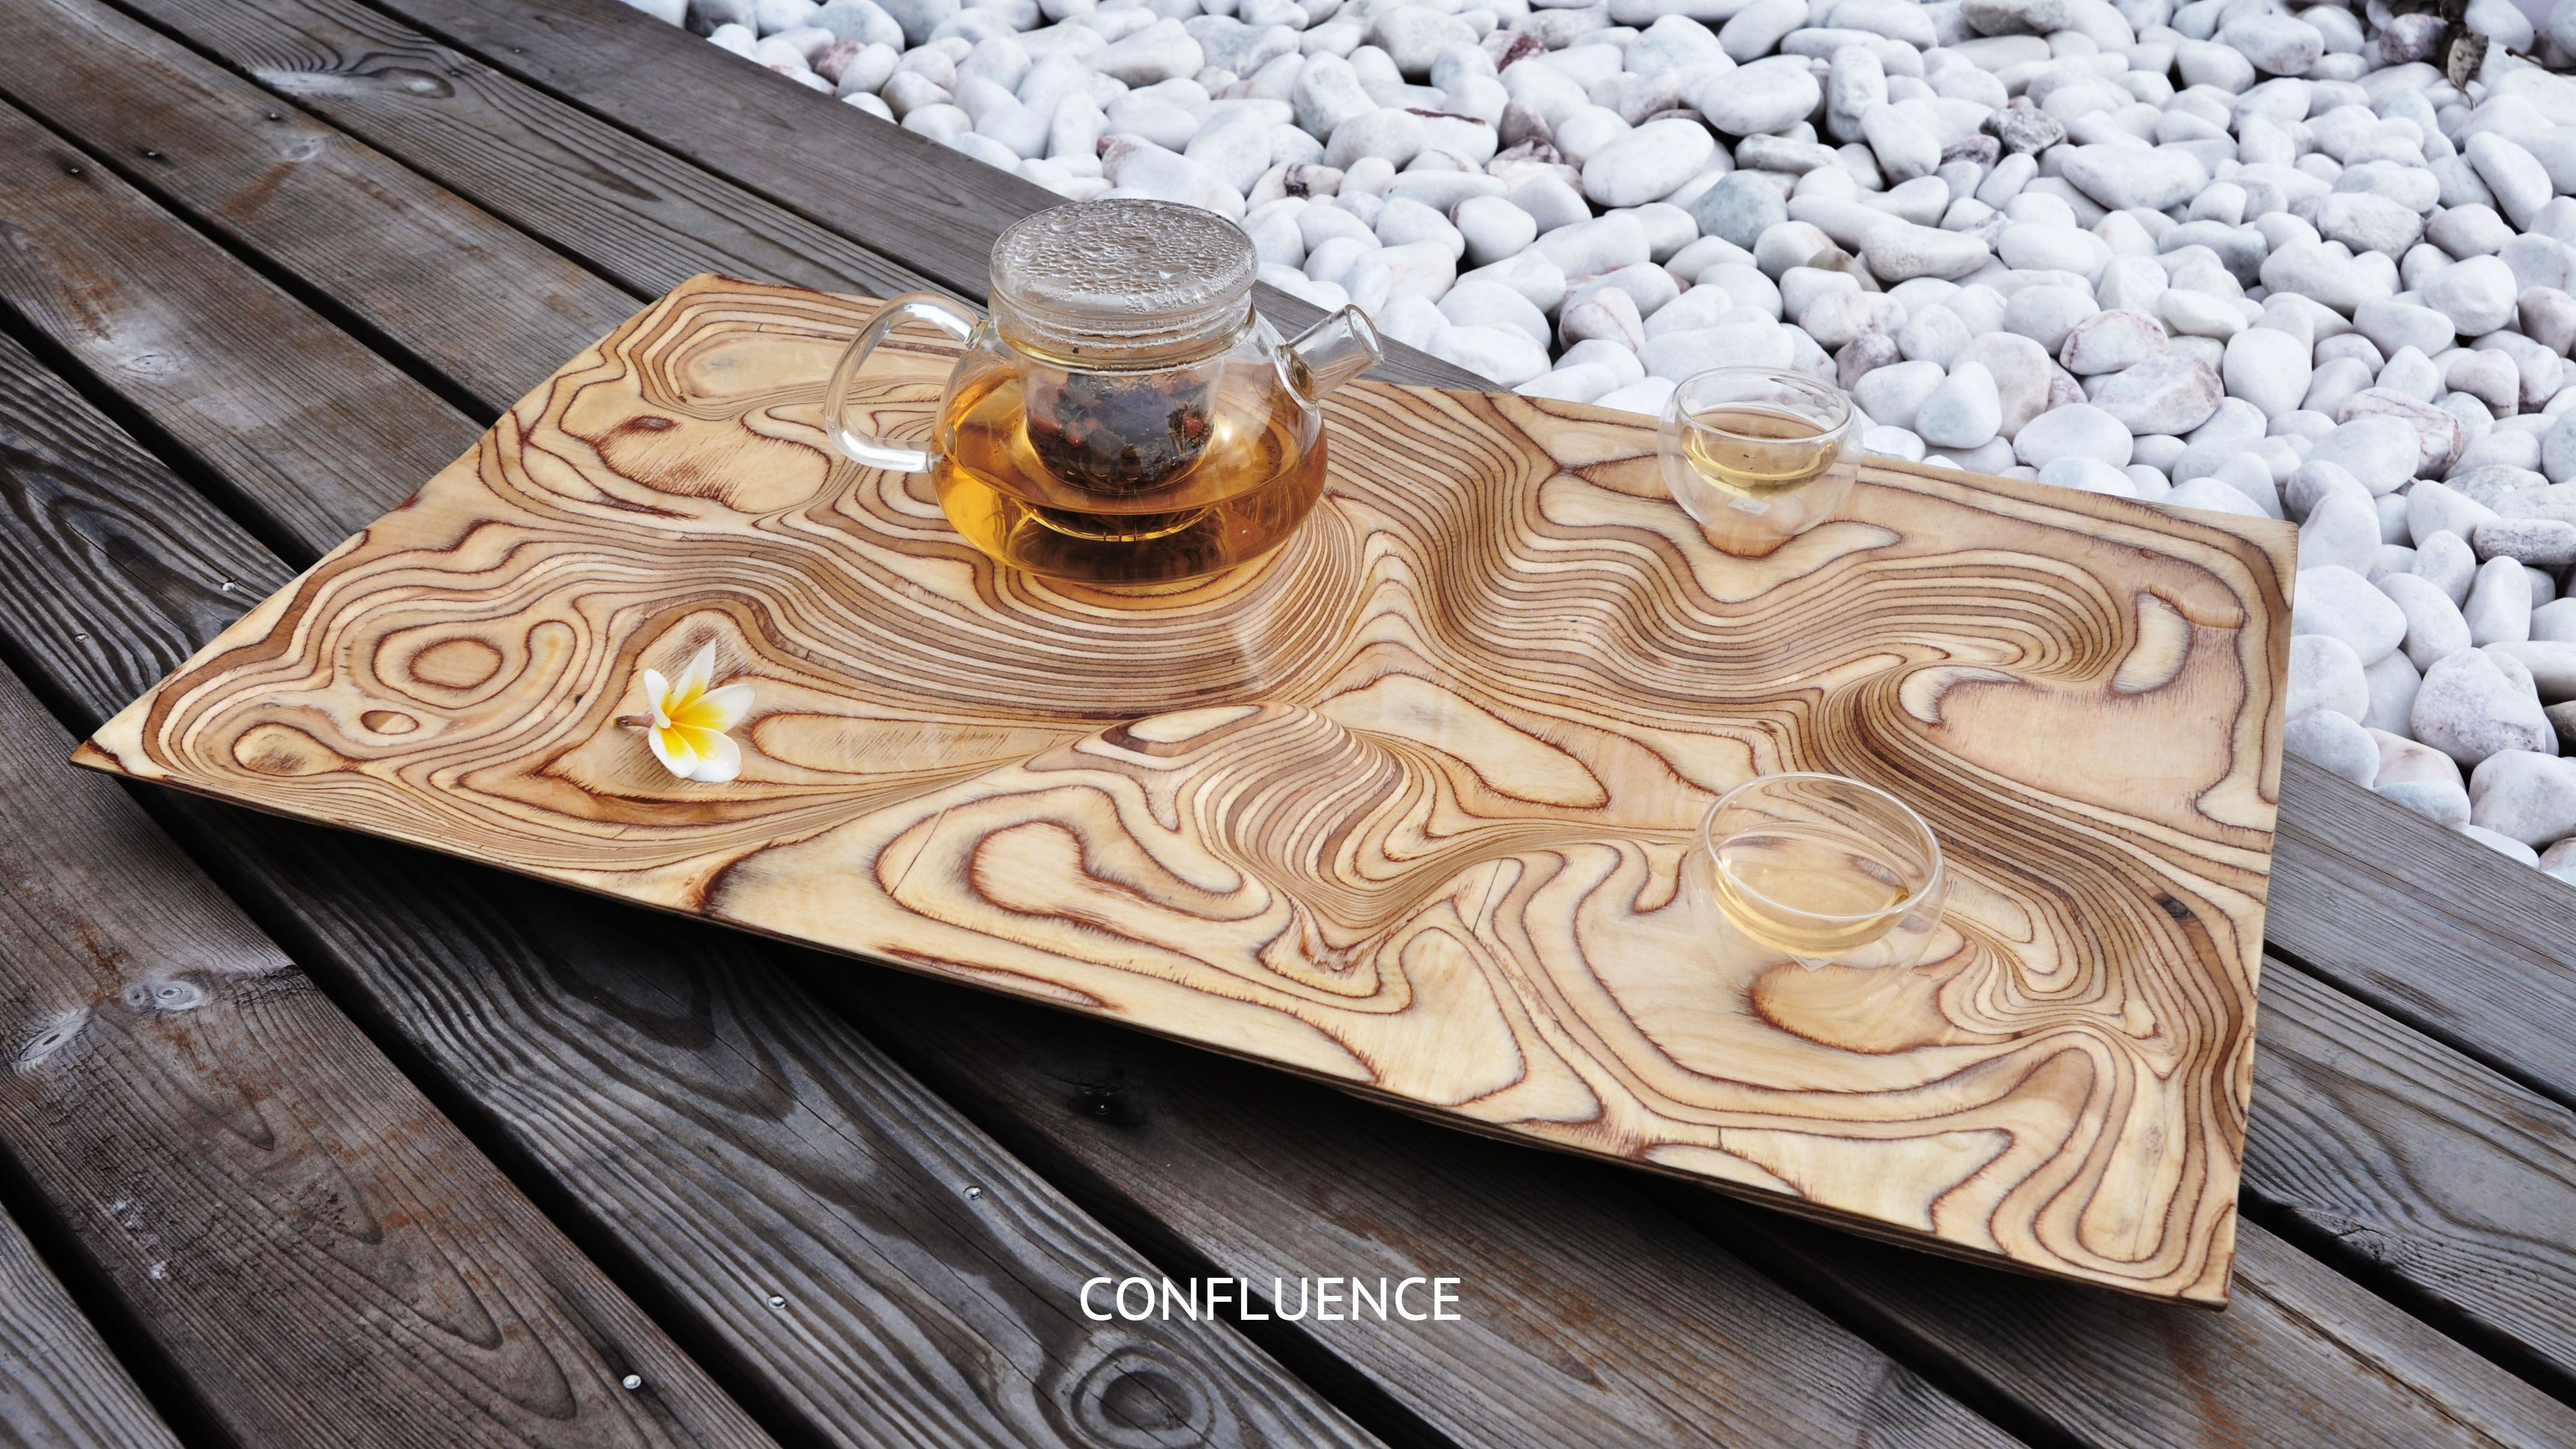 Confluence: Birch Plywood Tea Tray / Artonomos